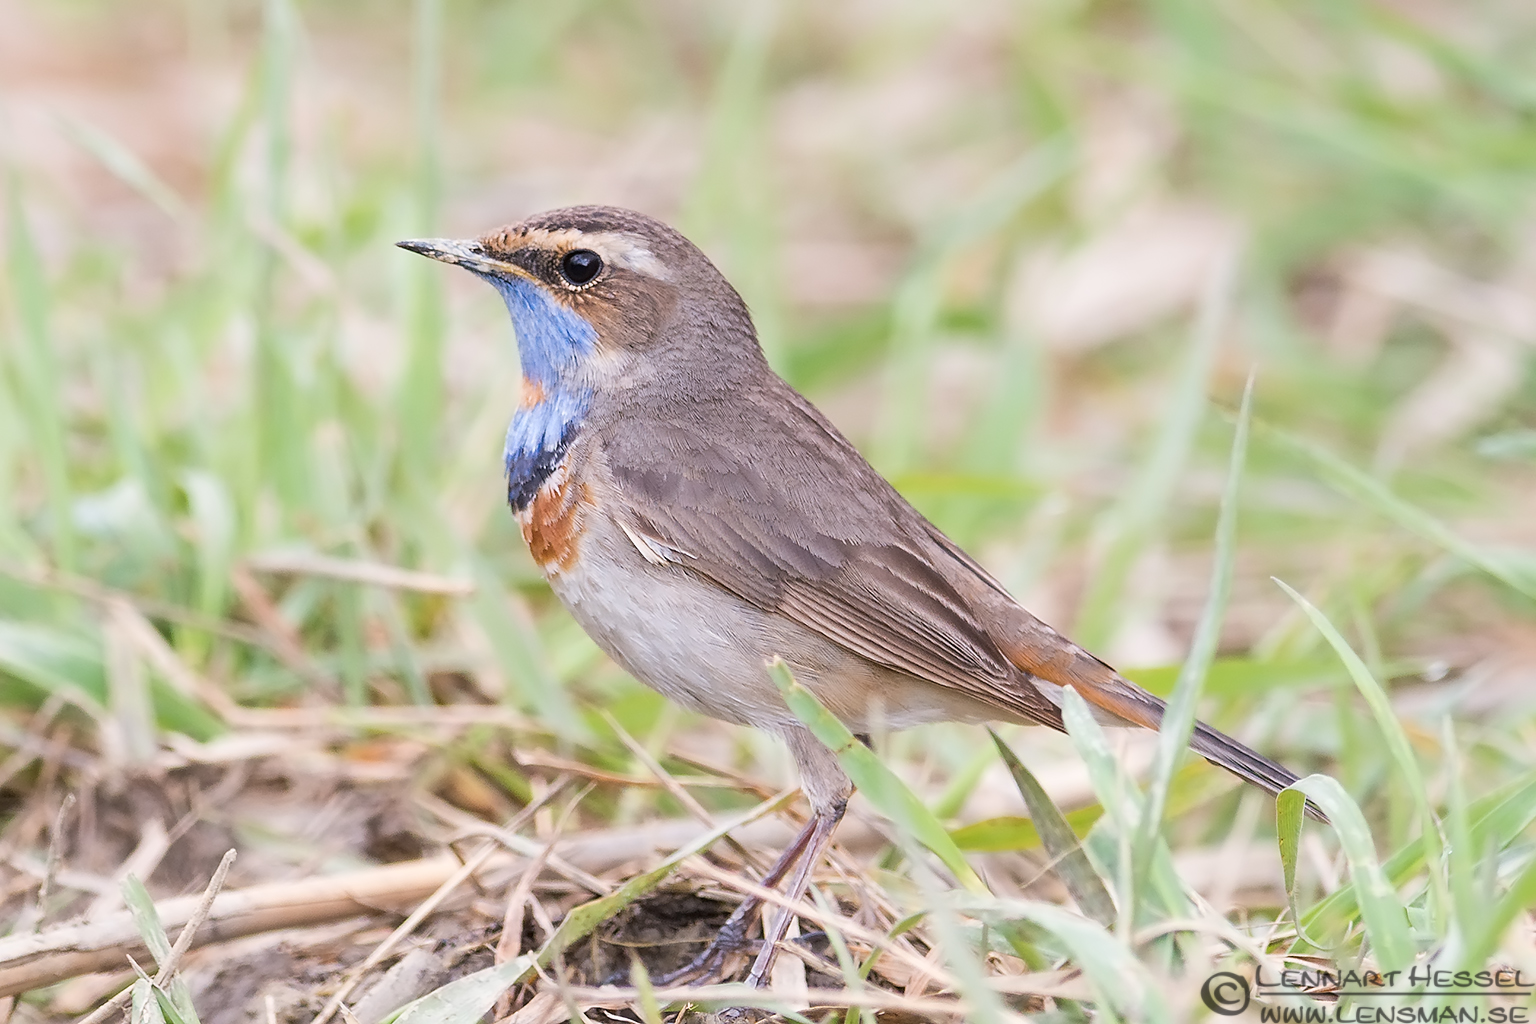 Bluethroat Transylvania, Romania